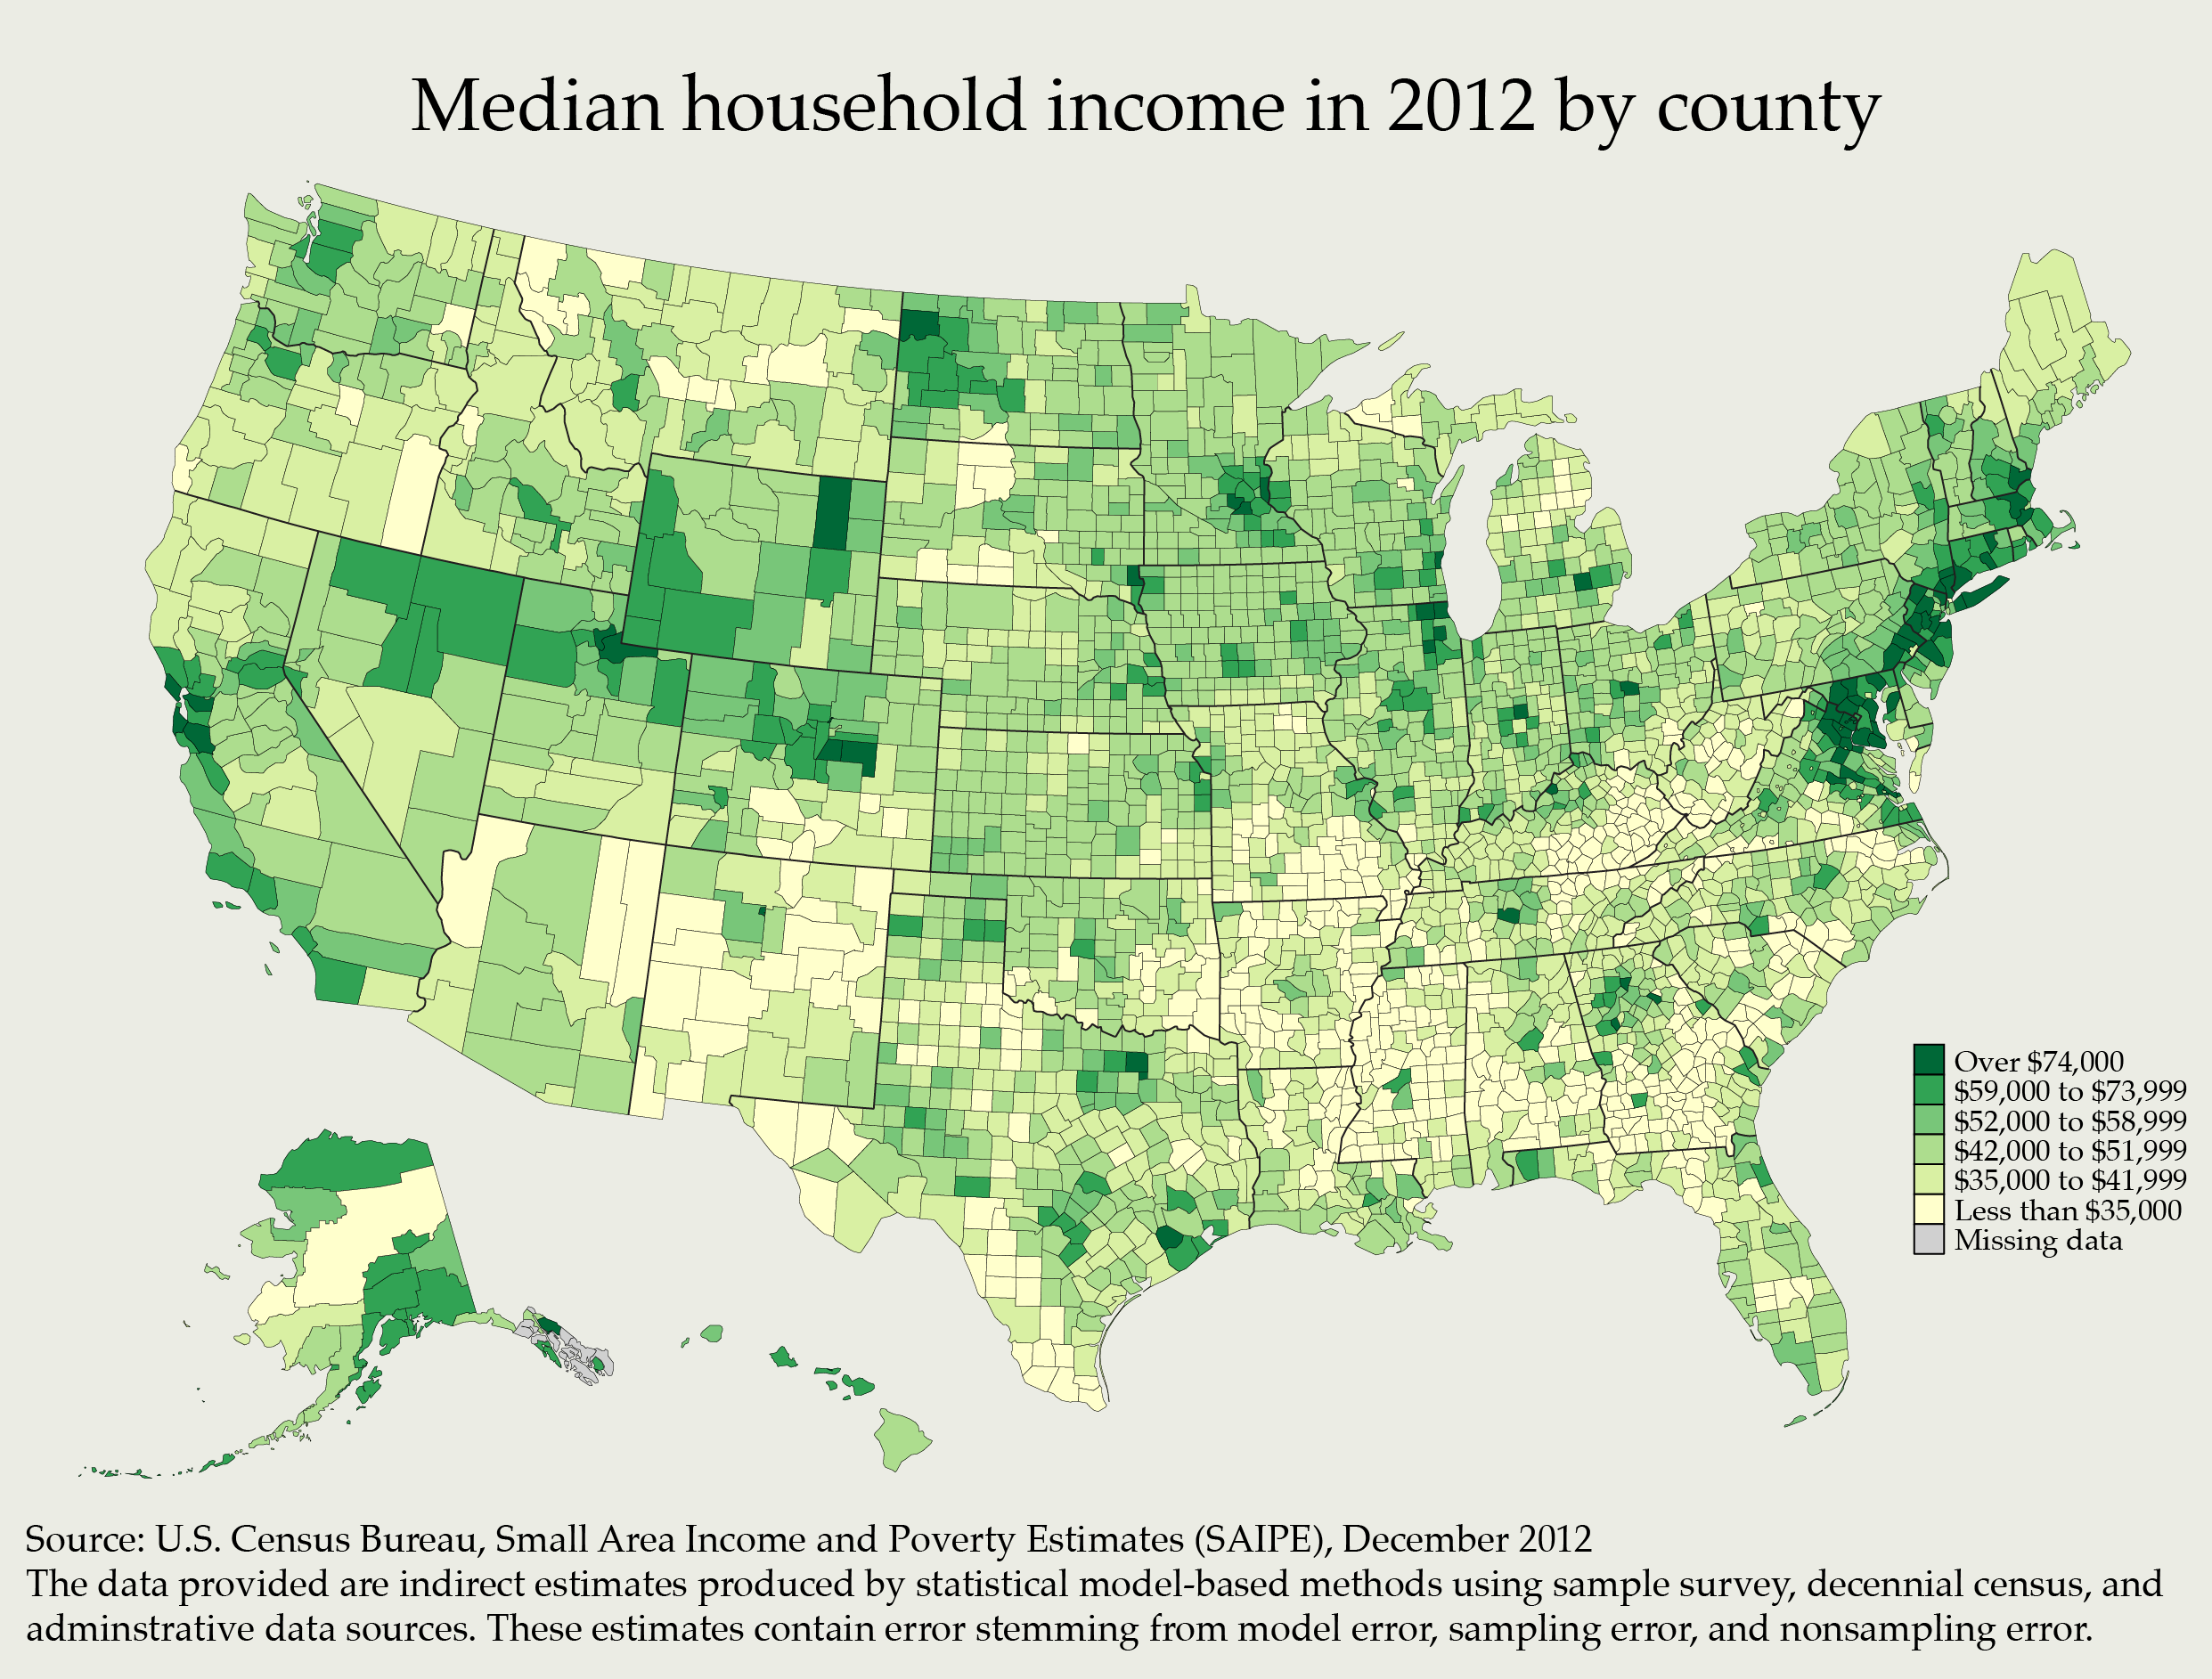 https://upload.wikimedia.org/wikipedia/commons/9/9e/US_county_household_median_income_2012.png